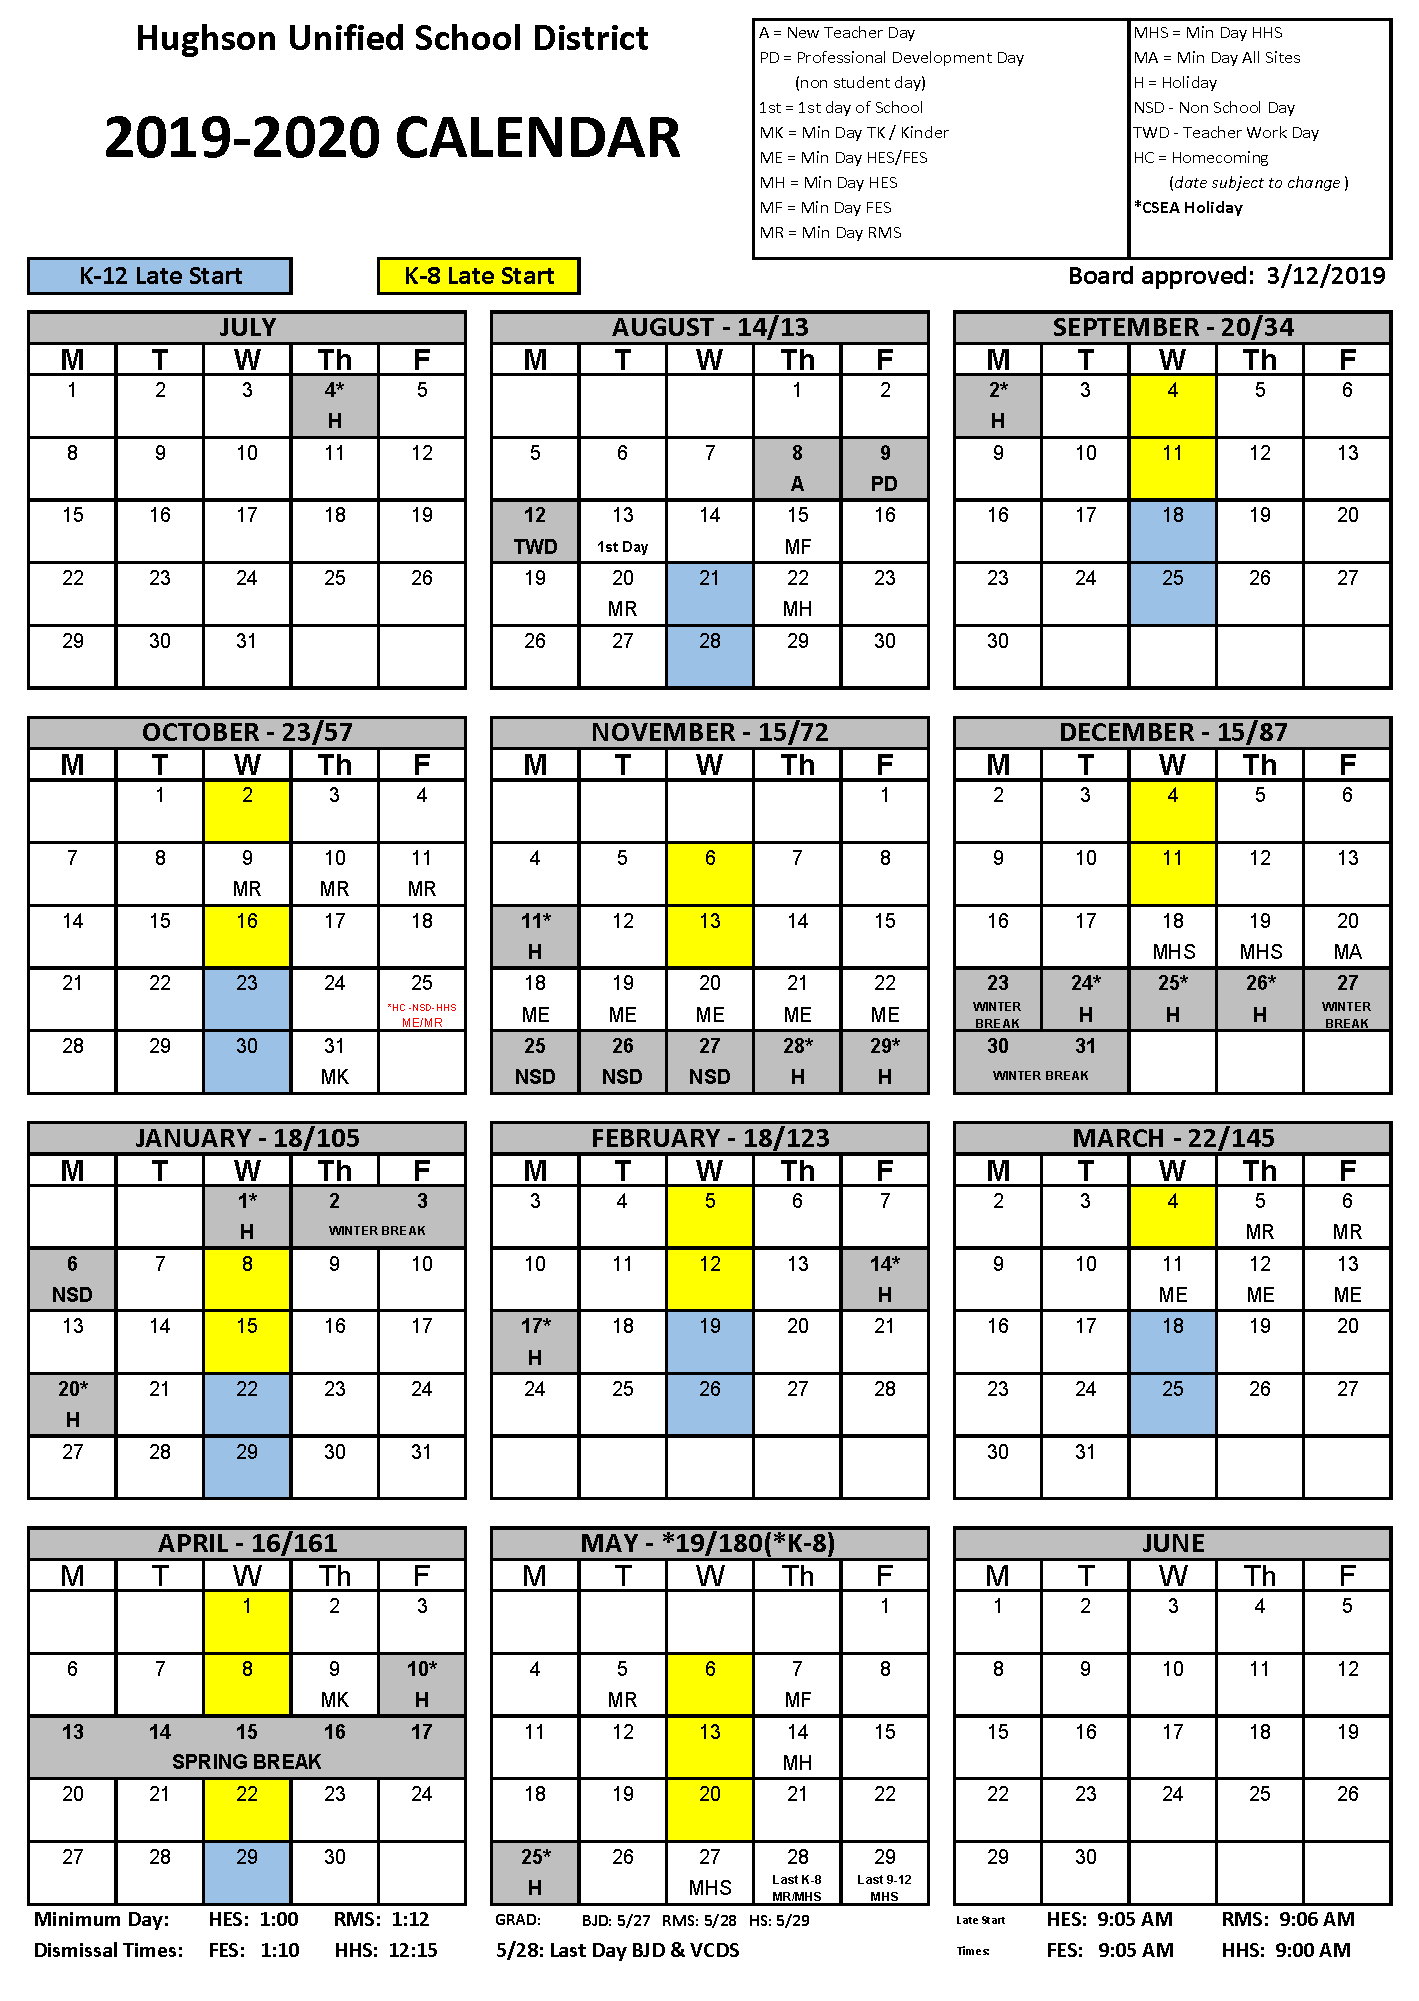 Collin County Community College District Calendar In Spring Calendar 2020 Collin County Community College